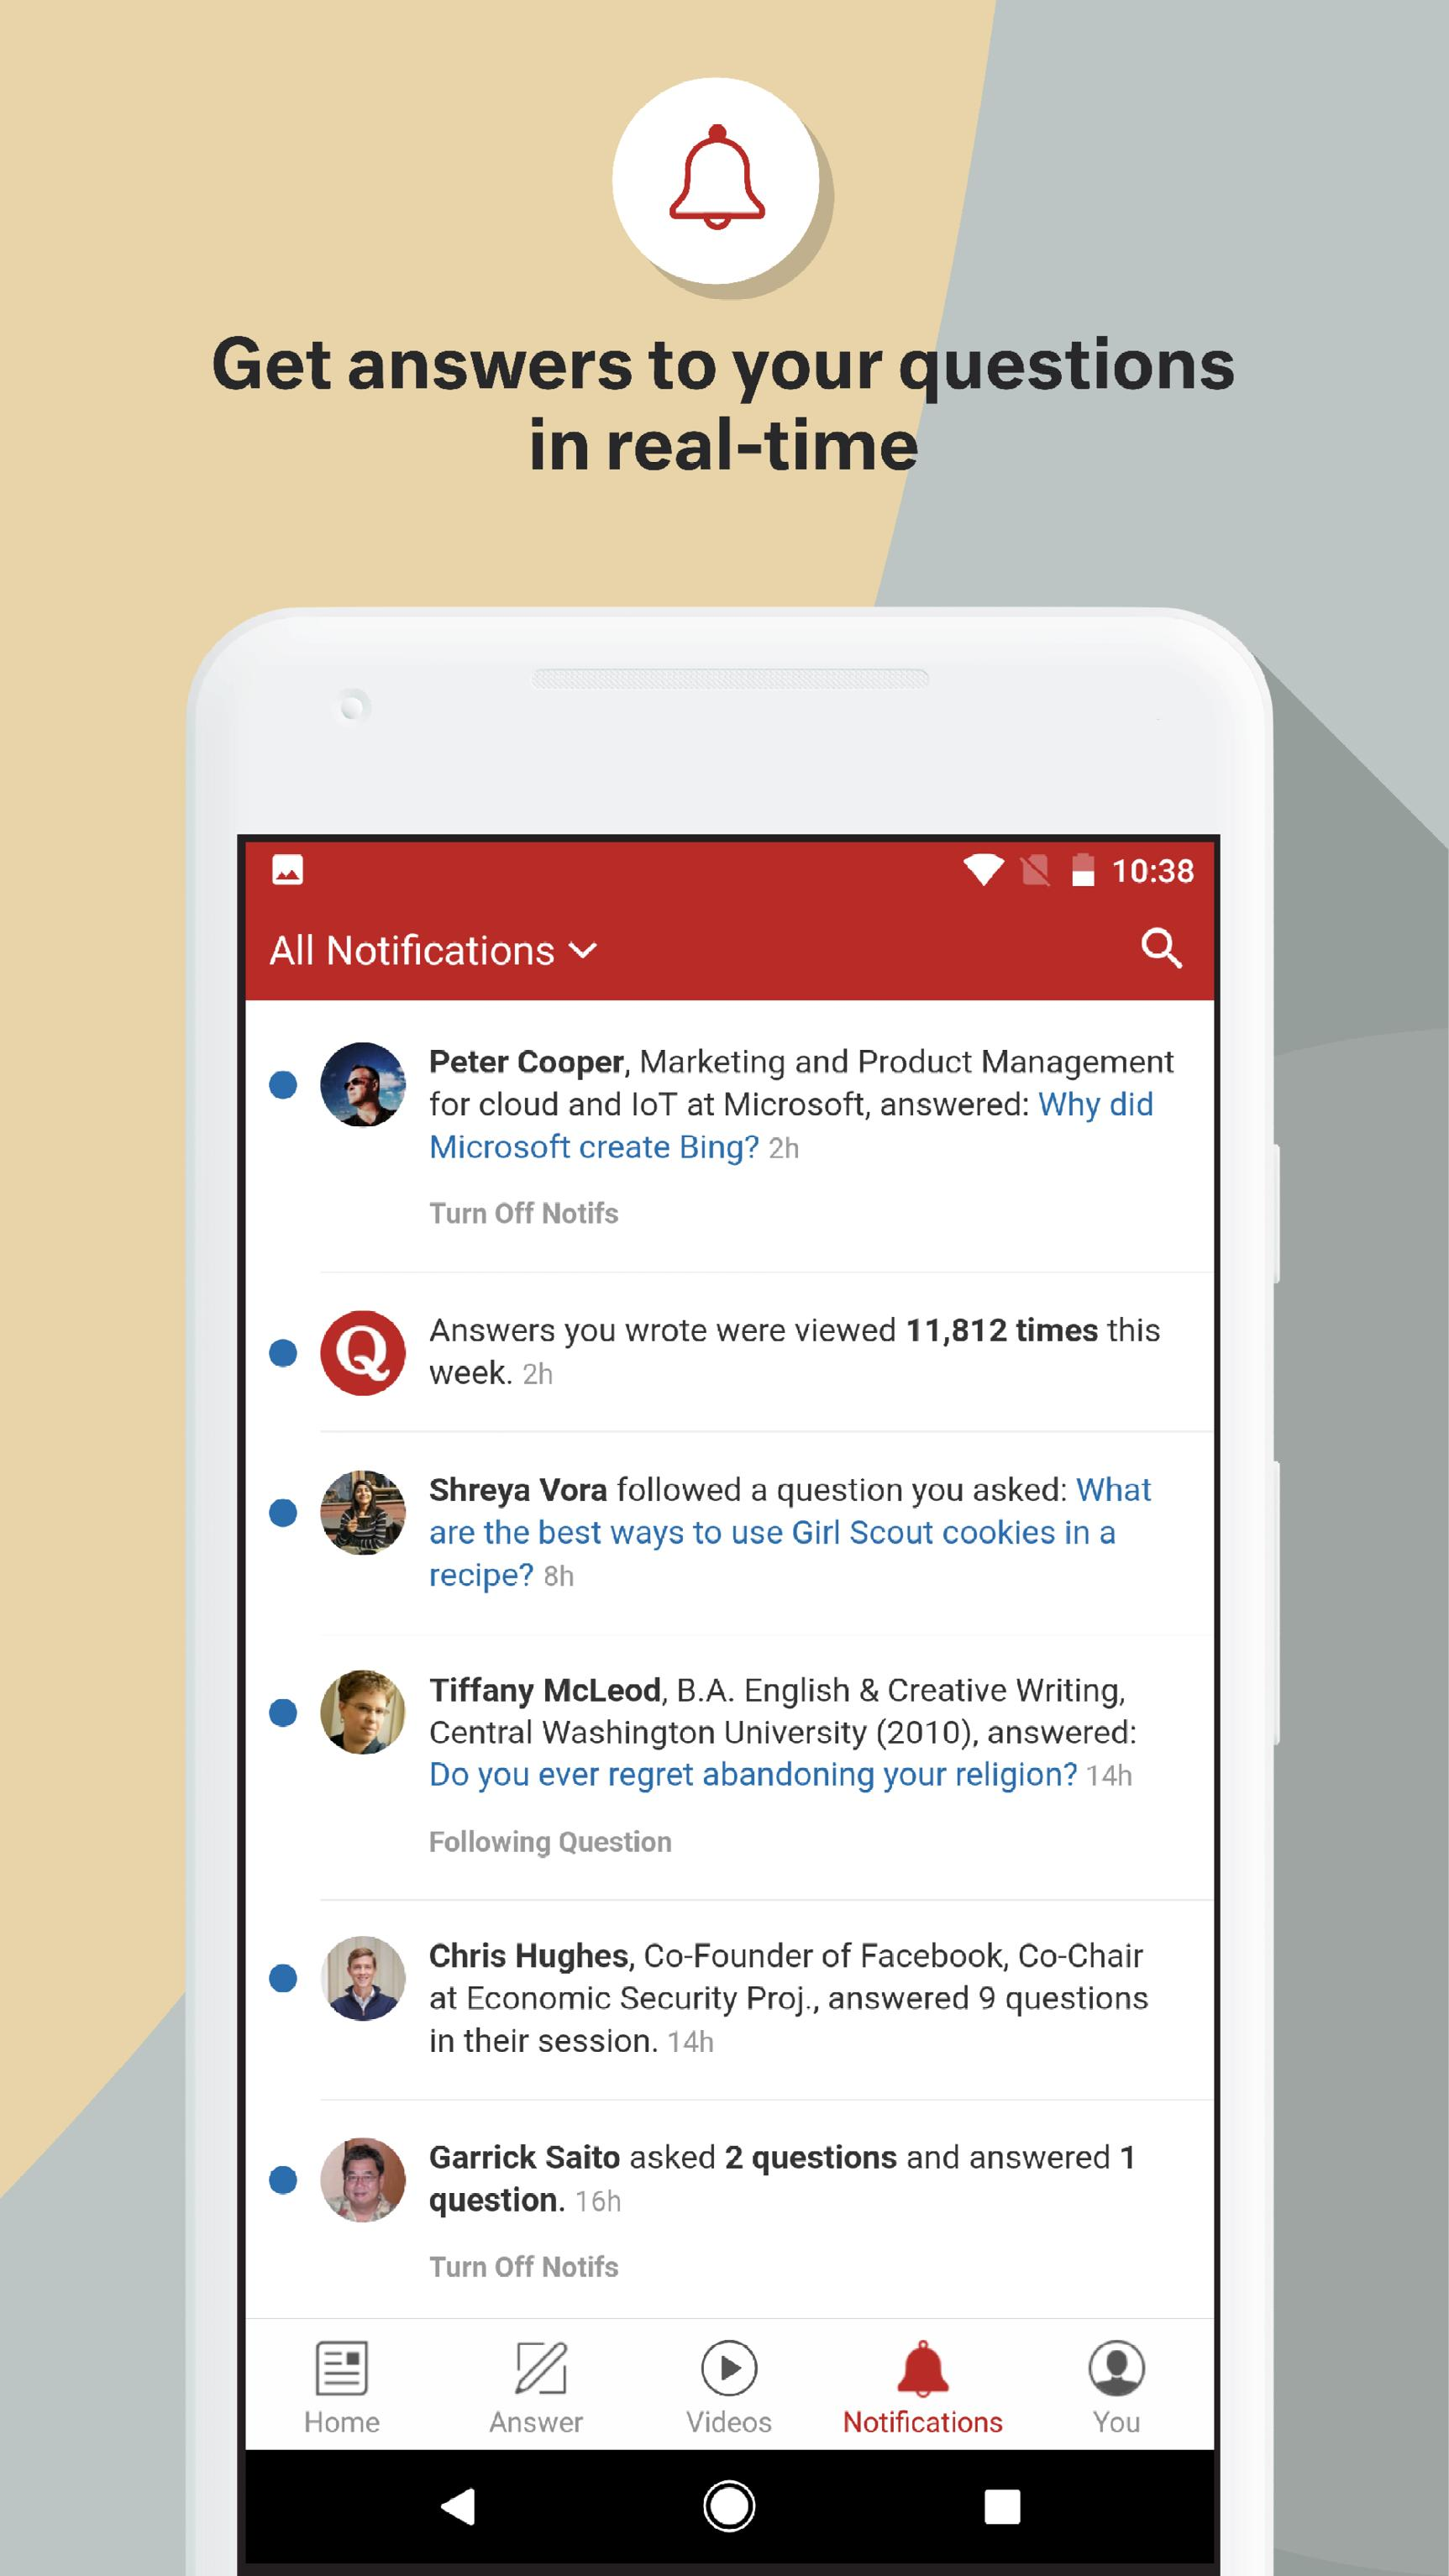 Quora — Questions, Answers, and More 2.8.31 Screenshot 5